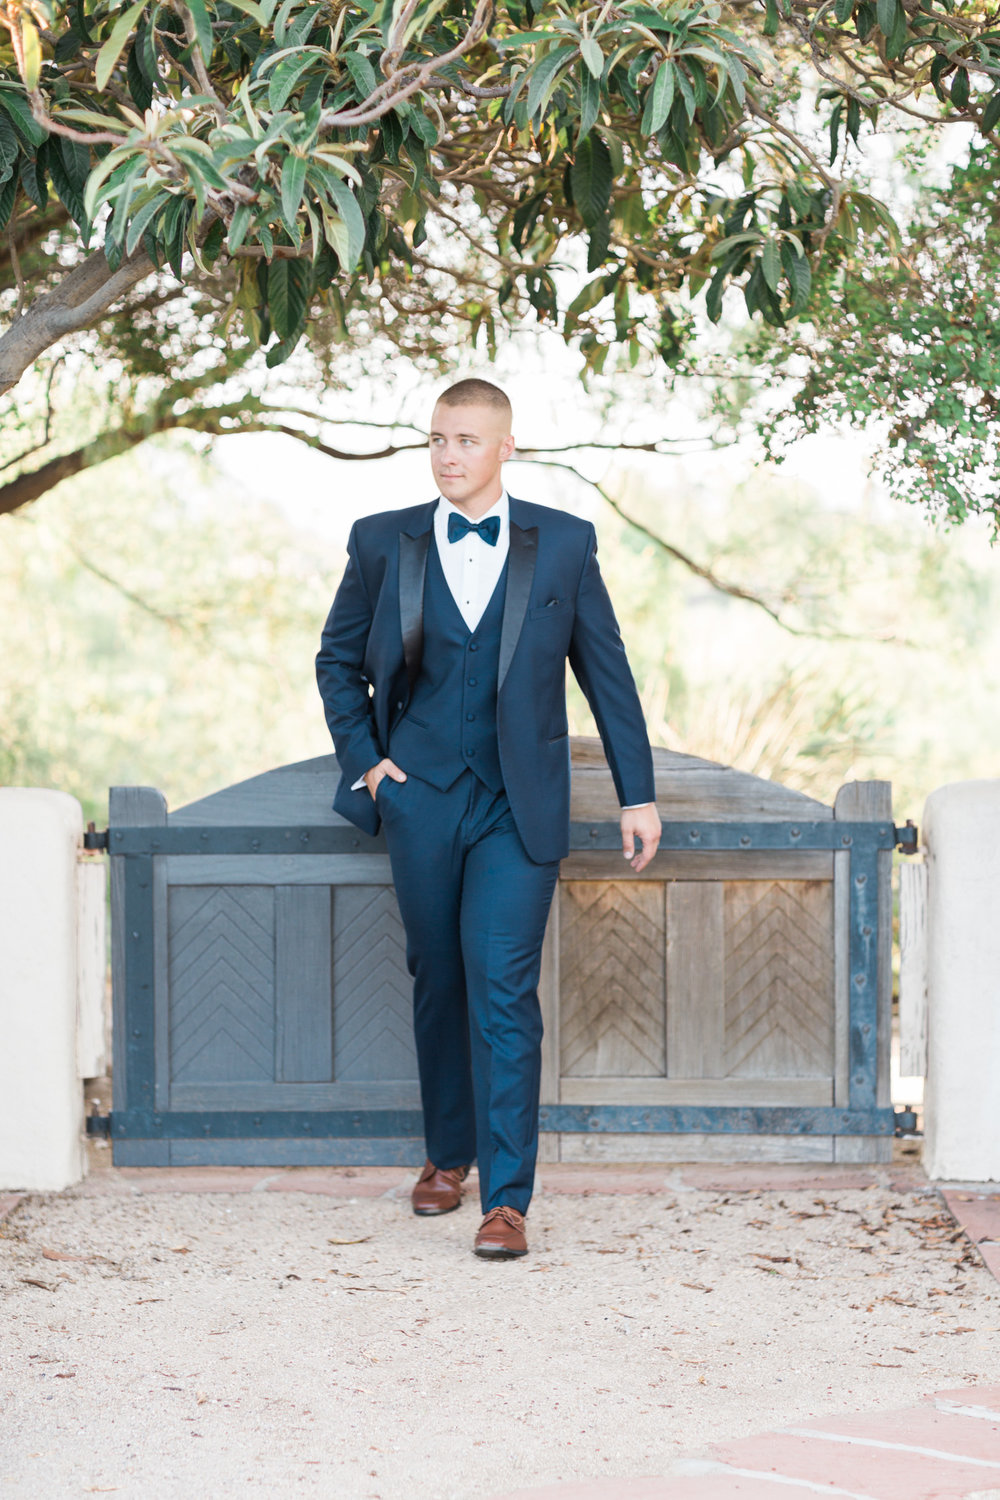 Handsome groom in a navy tux walking